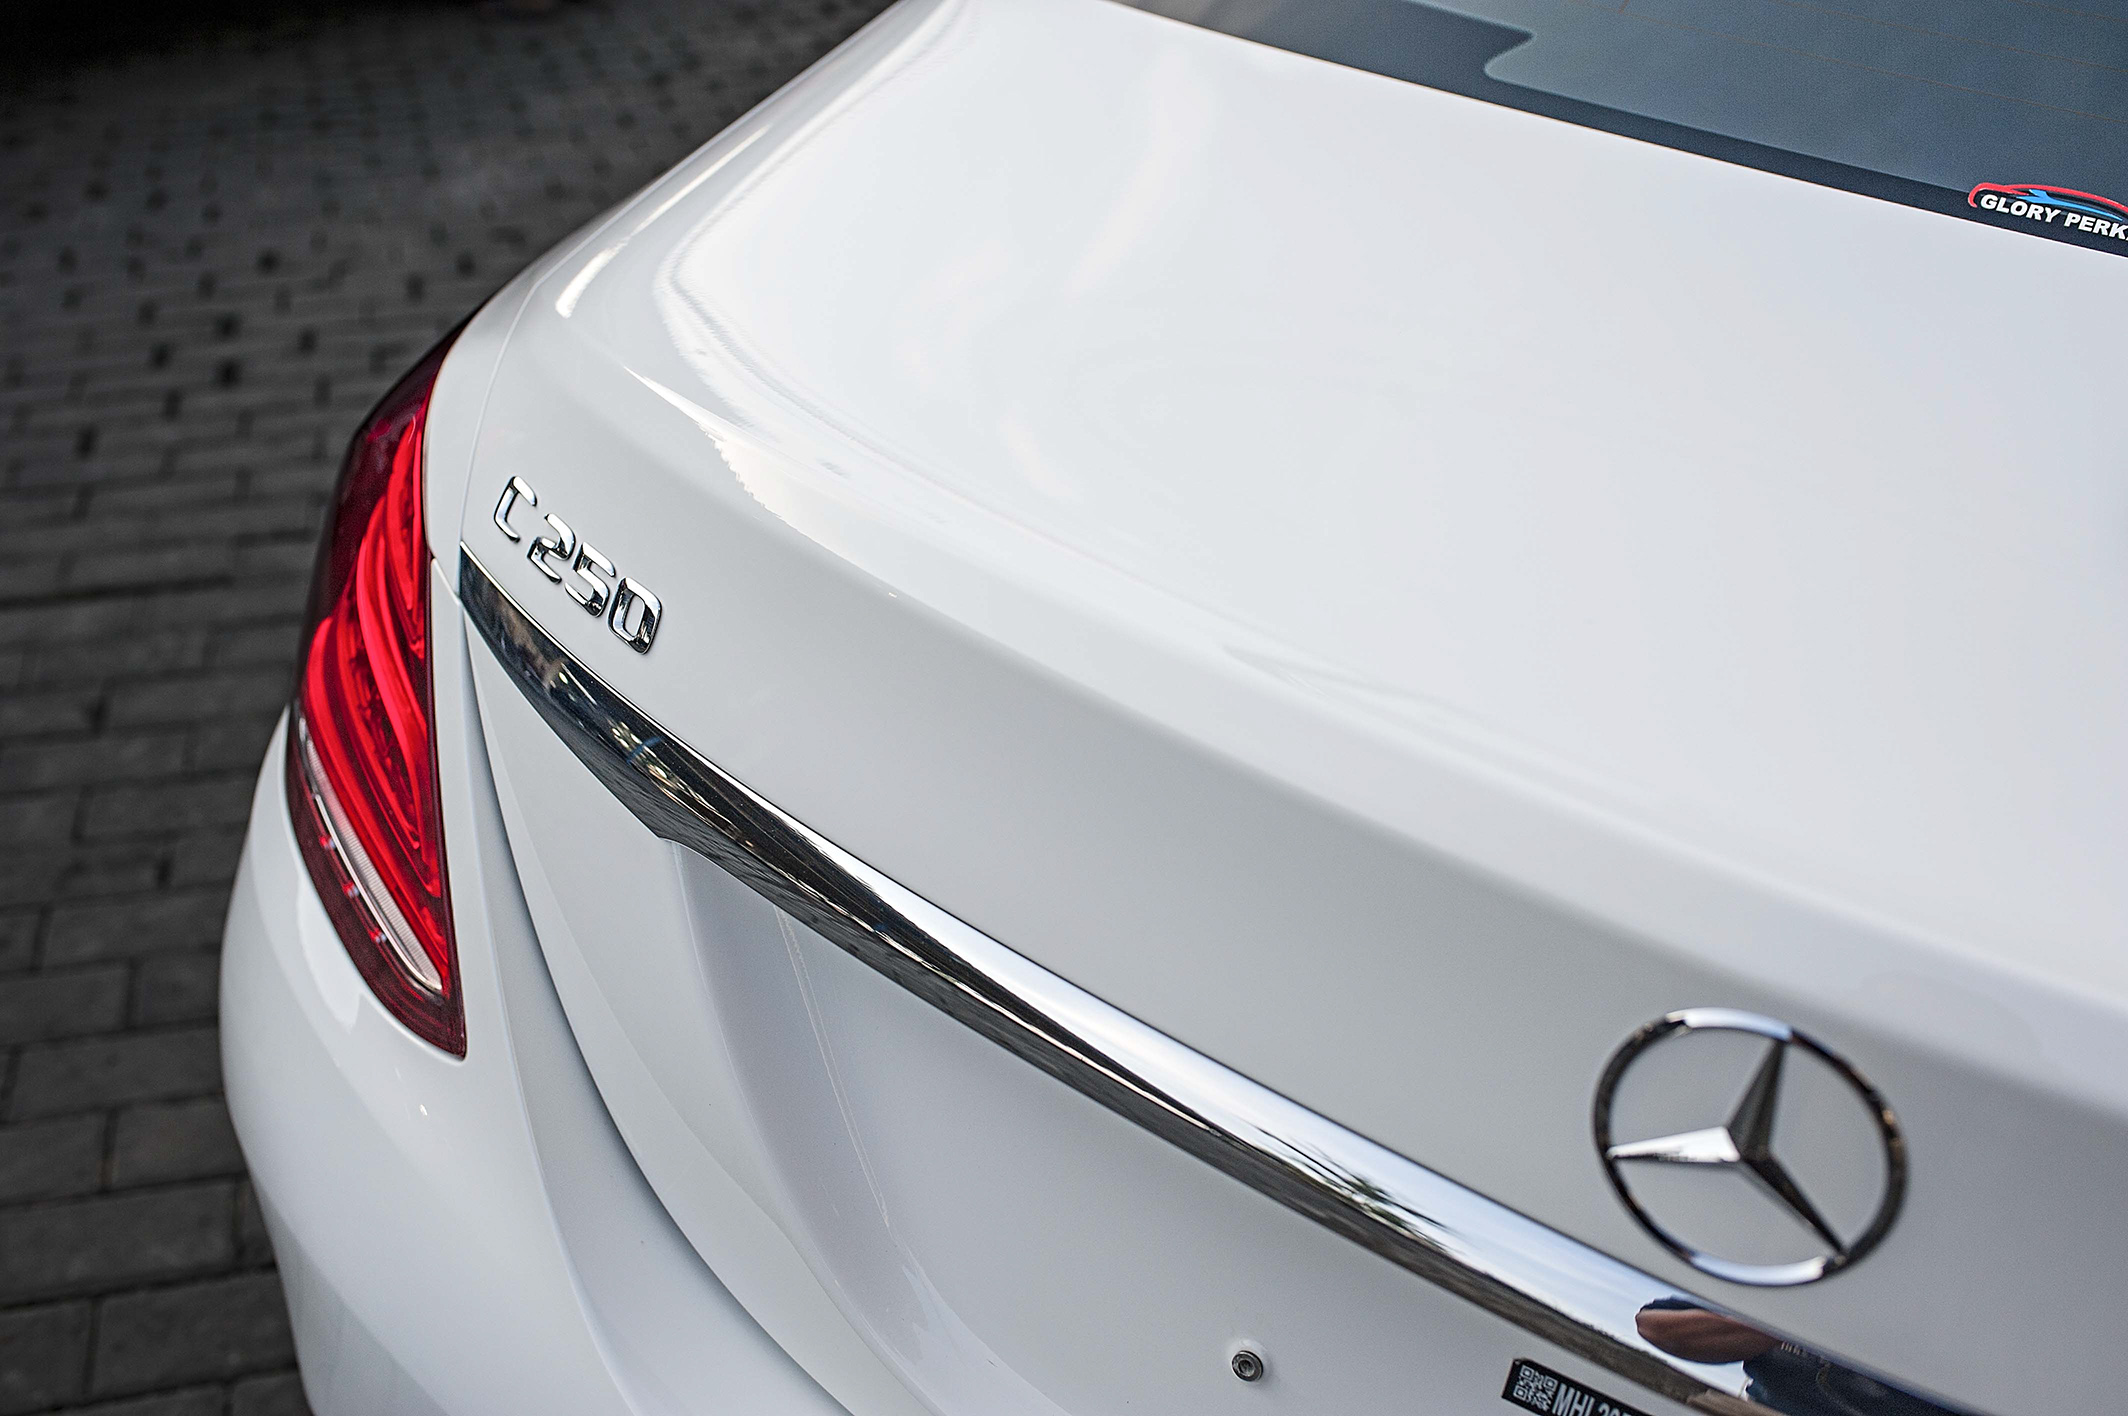 Mercedes C250 for triple layers Ceramic Coating